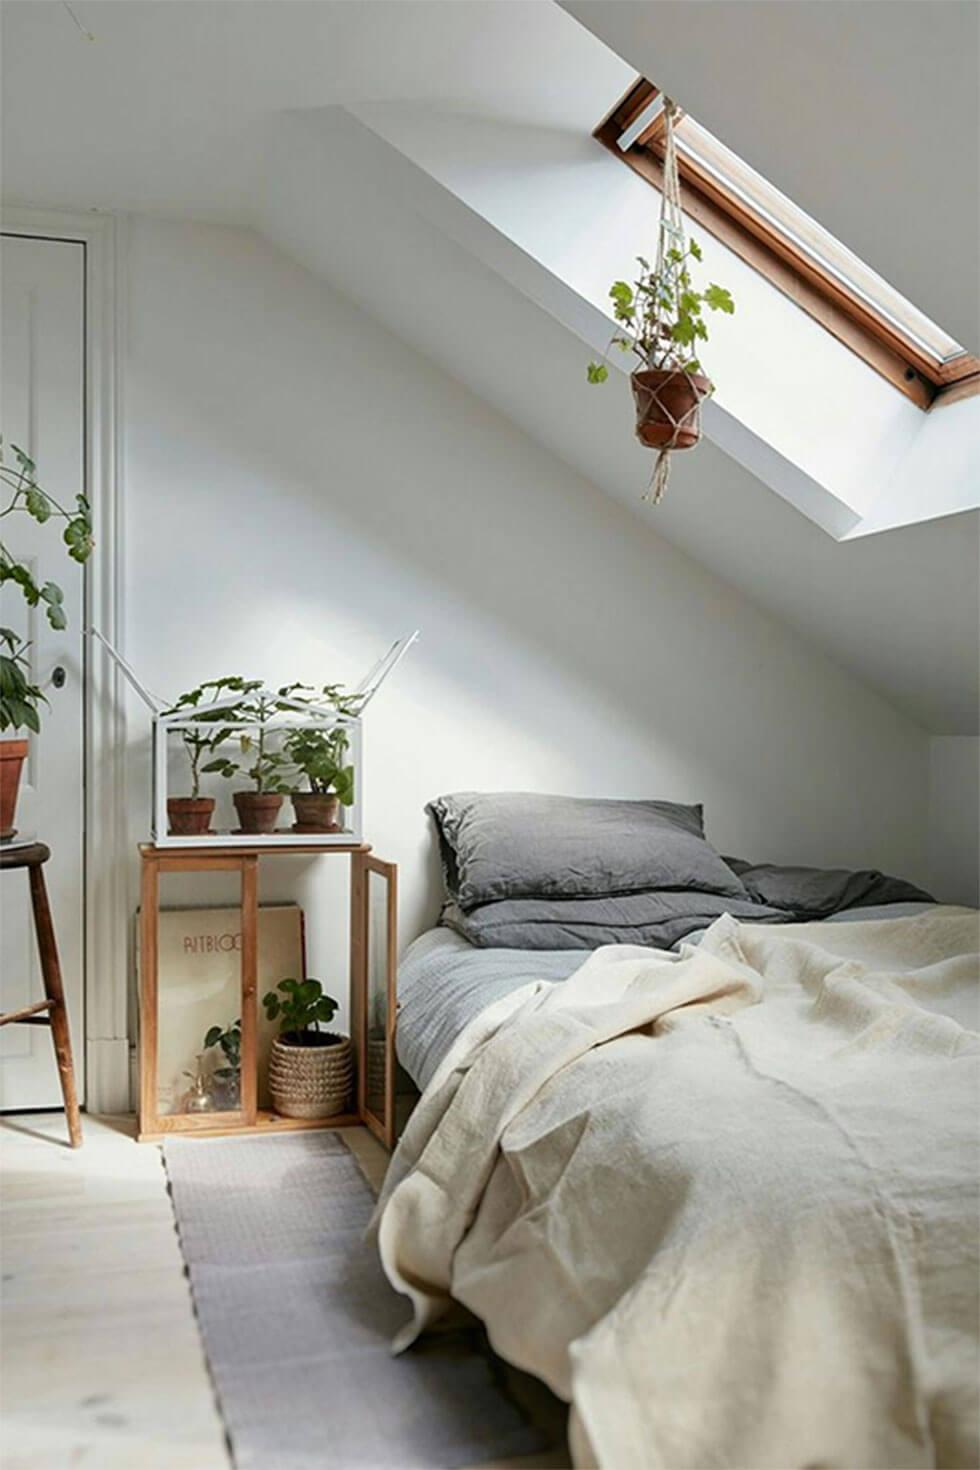 Neutral loft bedroom with grey pillows, white bedding and greenery